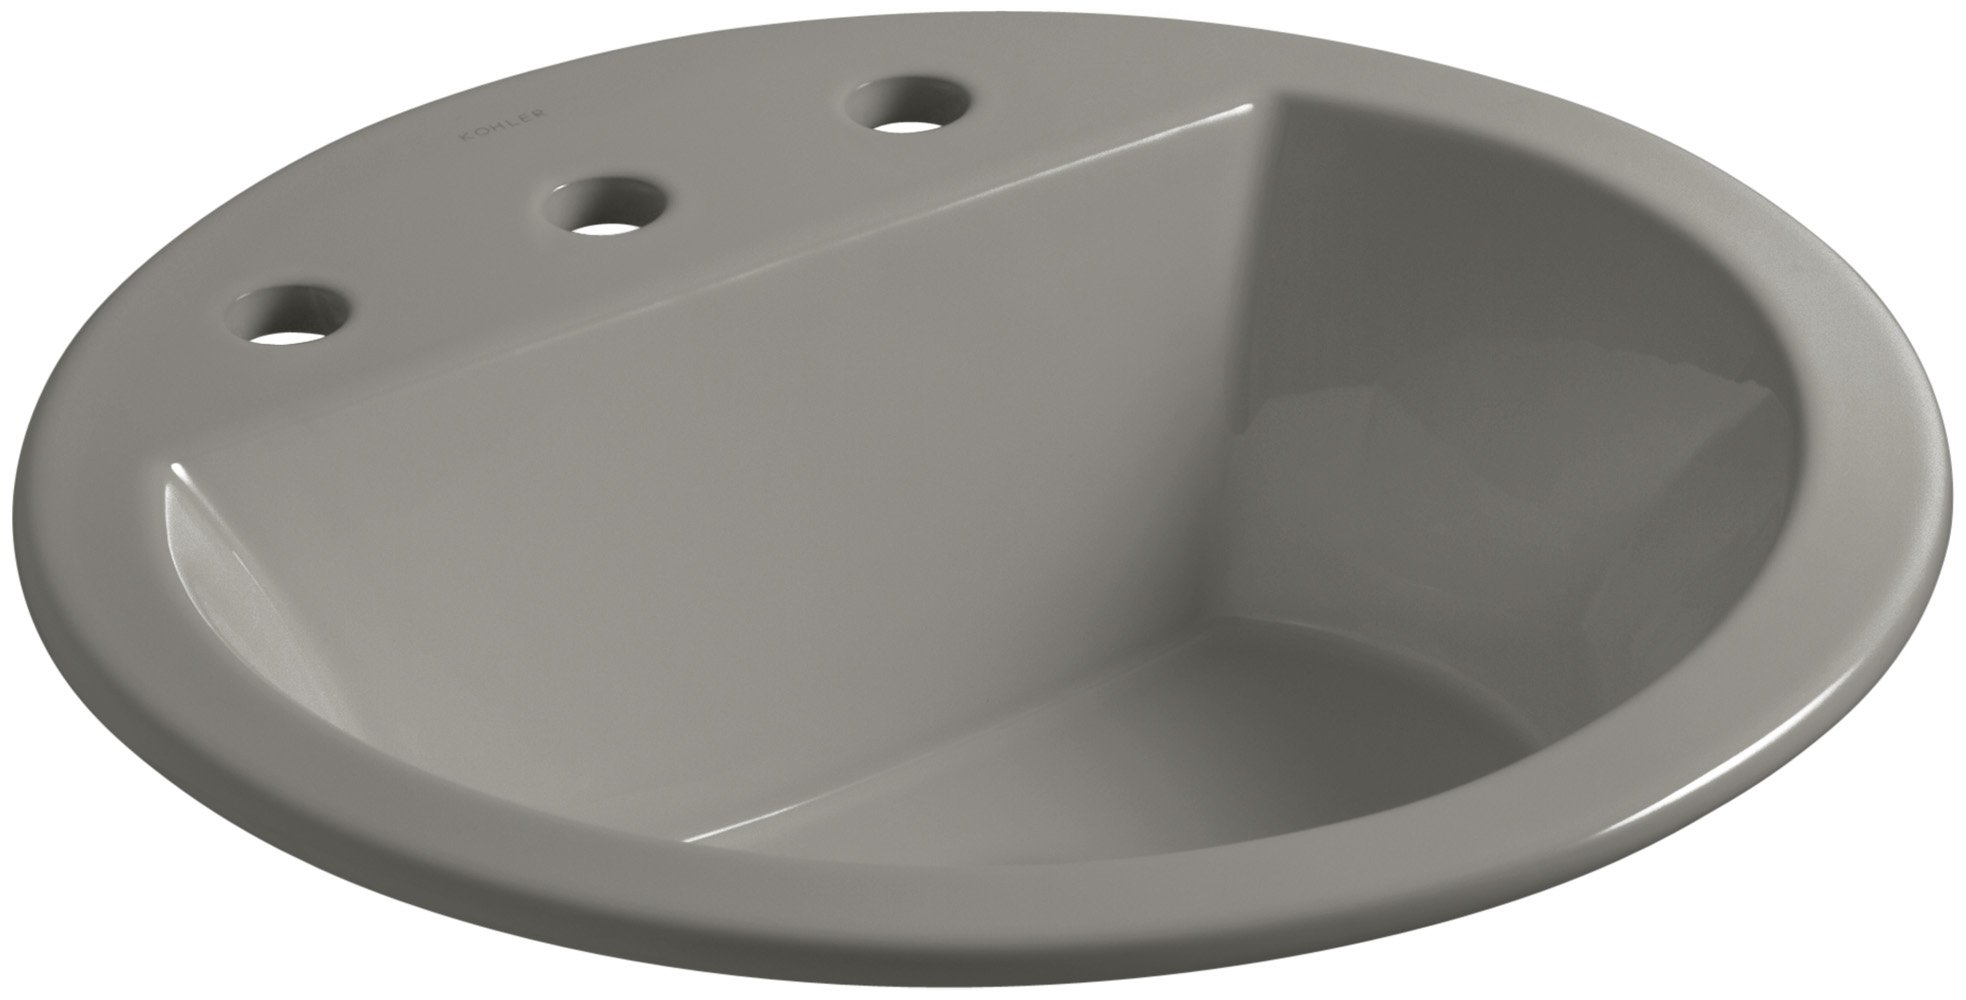 KOHLER K-2714-8-K4 Bryant Round Drop-In Bathroom Sink with Widespread Faucet Holes, 8'', Cashmere by Kohler